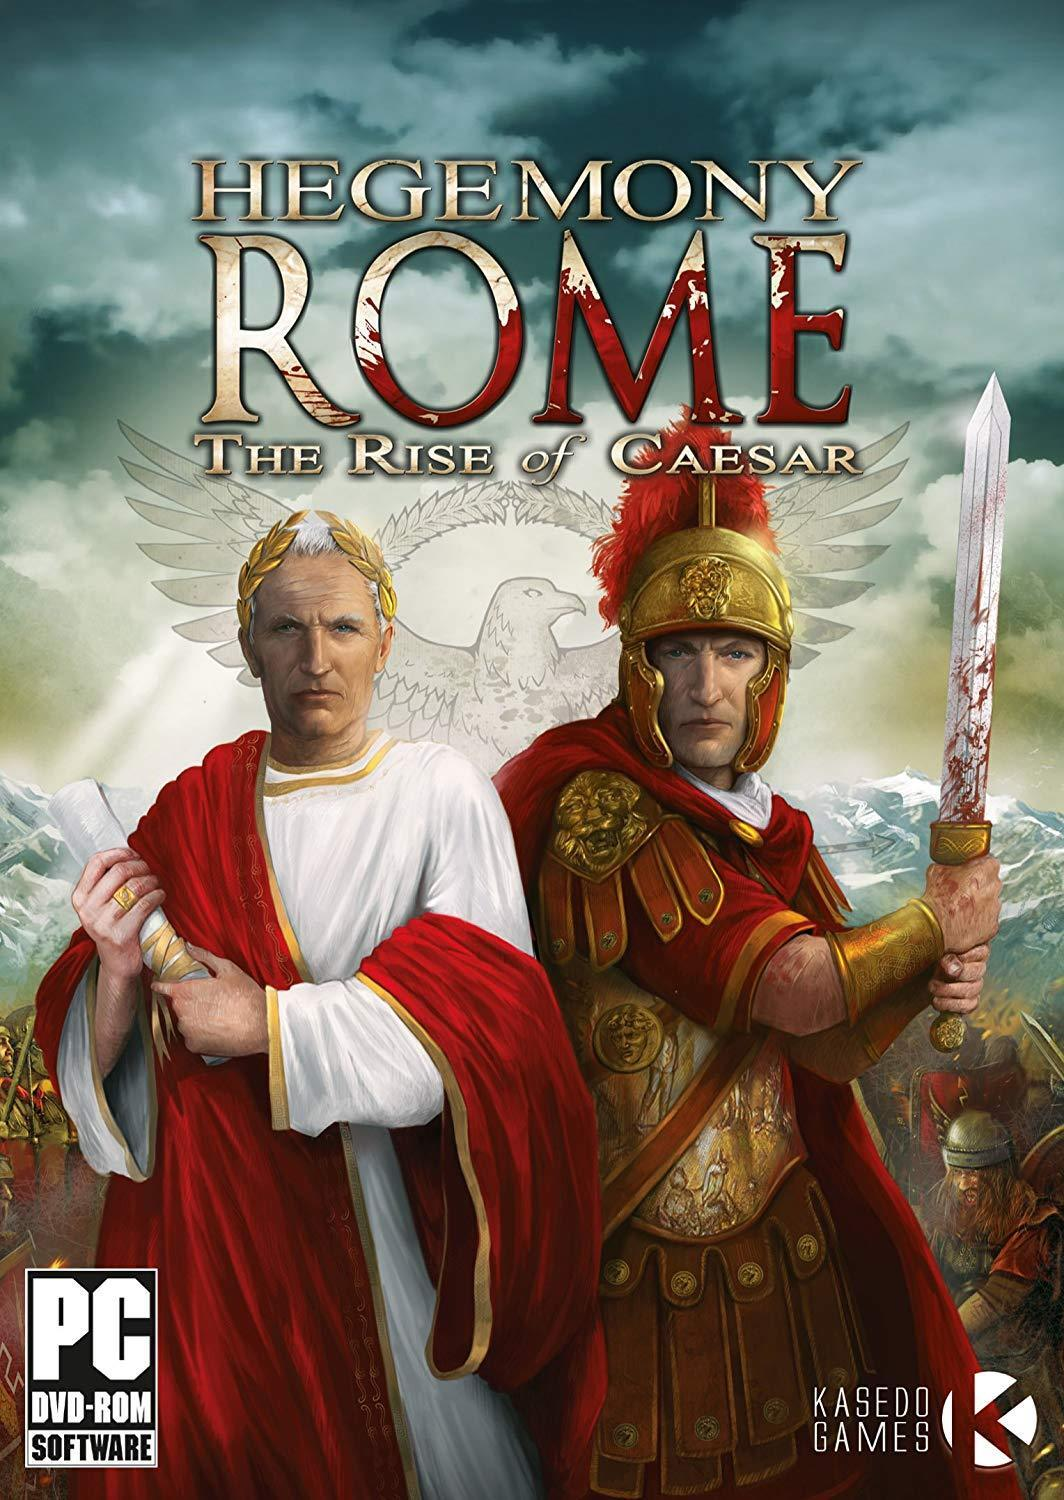 Computer Games - Hegemony Rome Rise of Caesar PC Games Windows 10 8 7 XP Computer strategy city